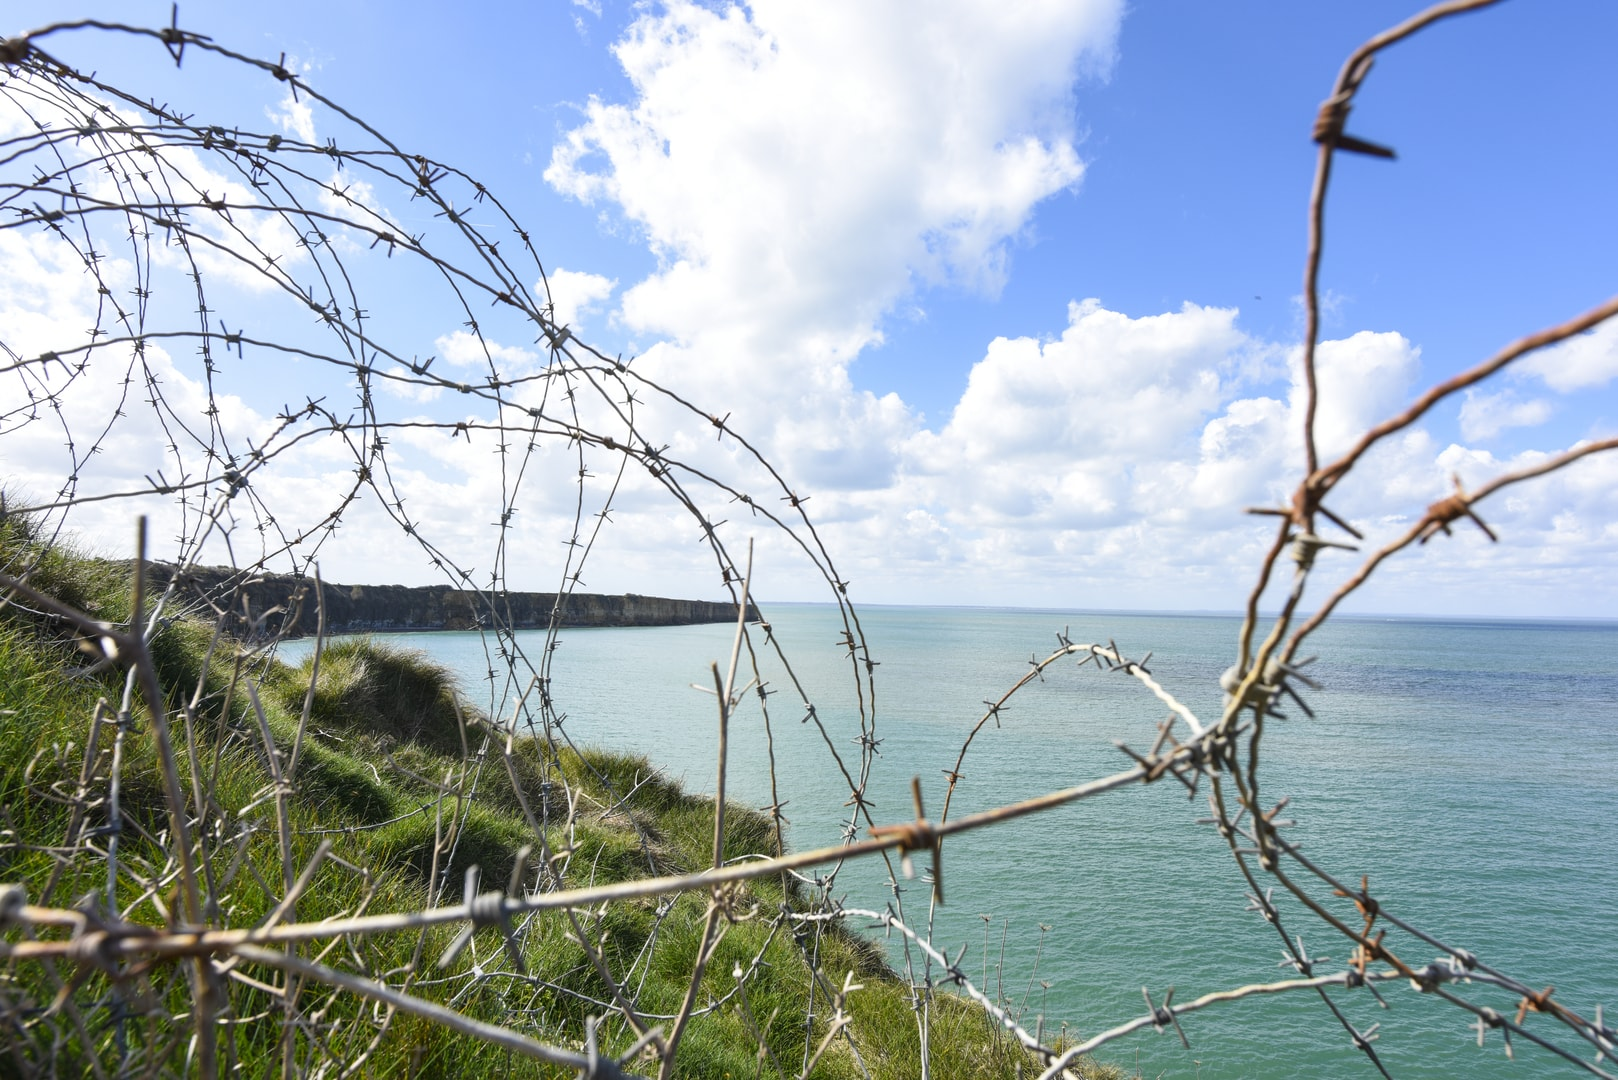 Normandy's cliffs with barbed wire in foreground